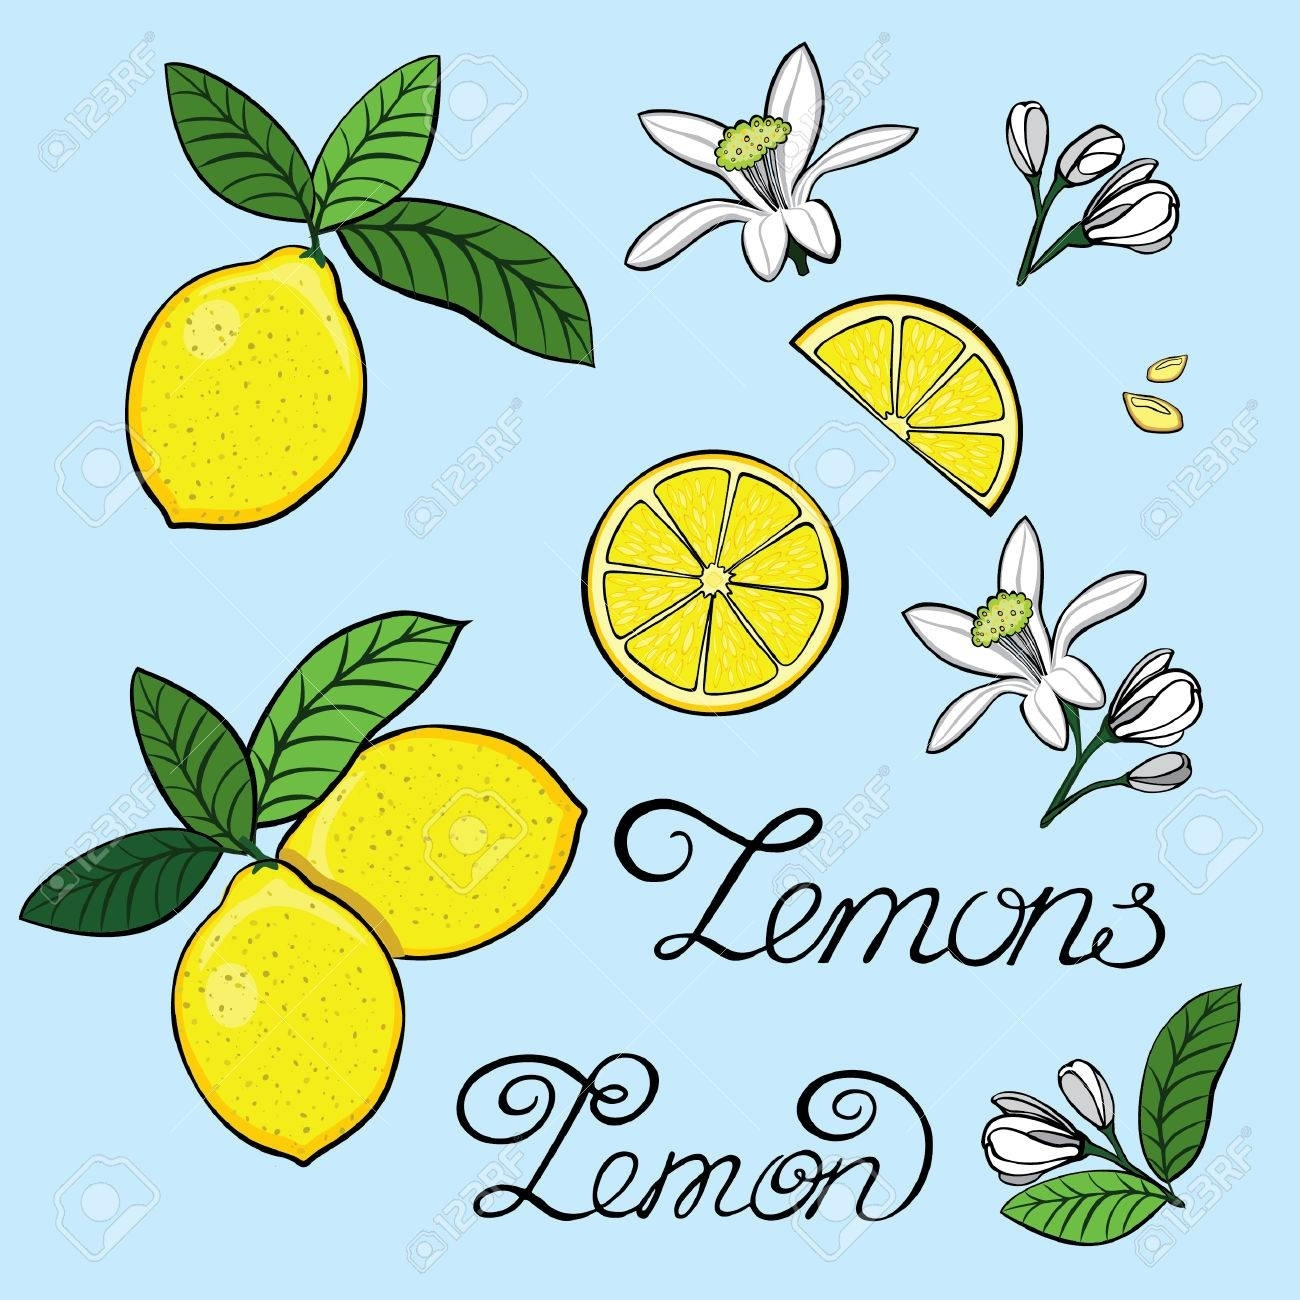 Elements For The Design Of A Lemon, Lemon Tree Flowers, Grain With Newest Lemon Wall Art (View 4 of 20)